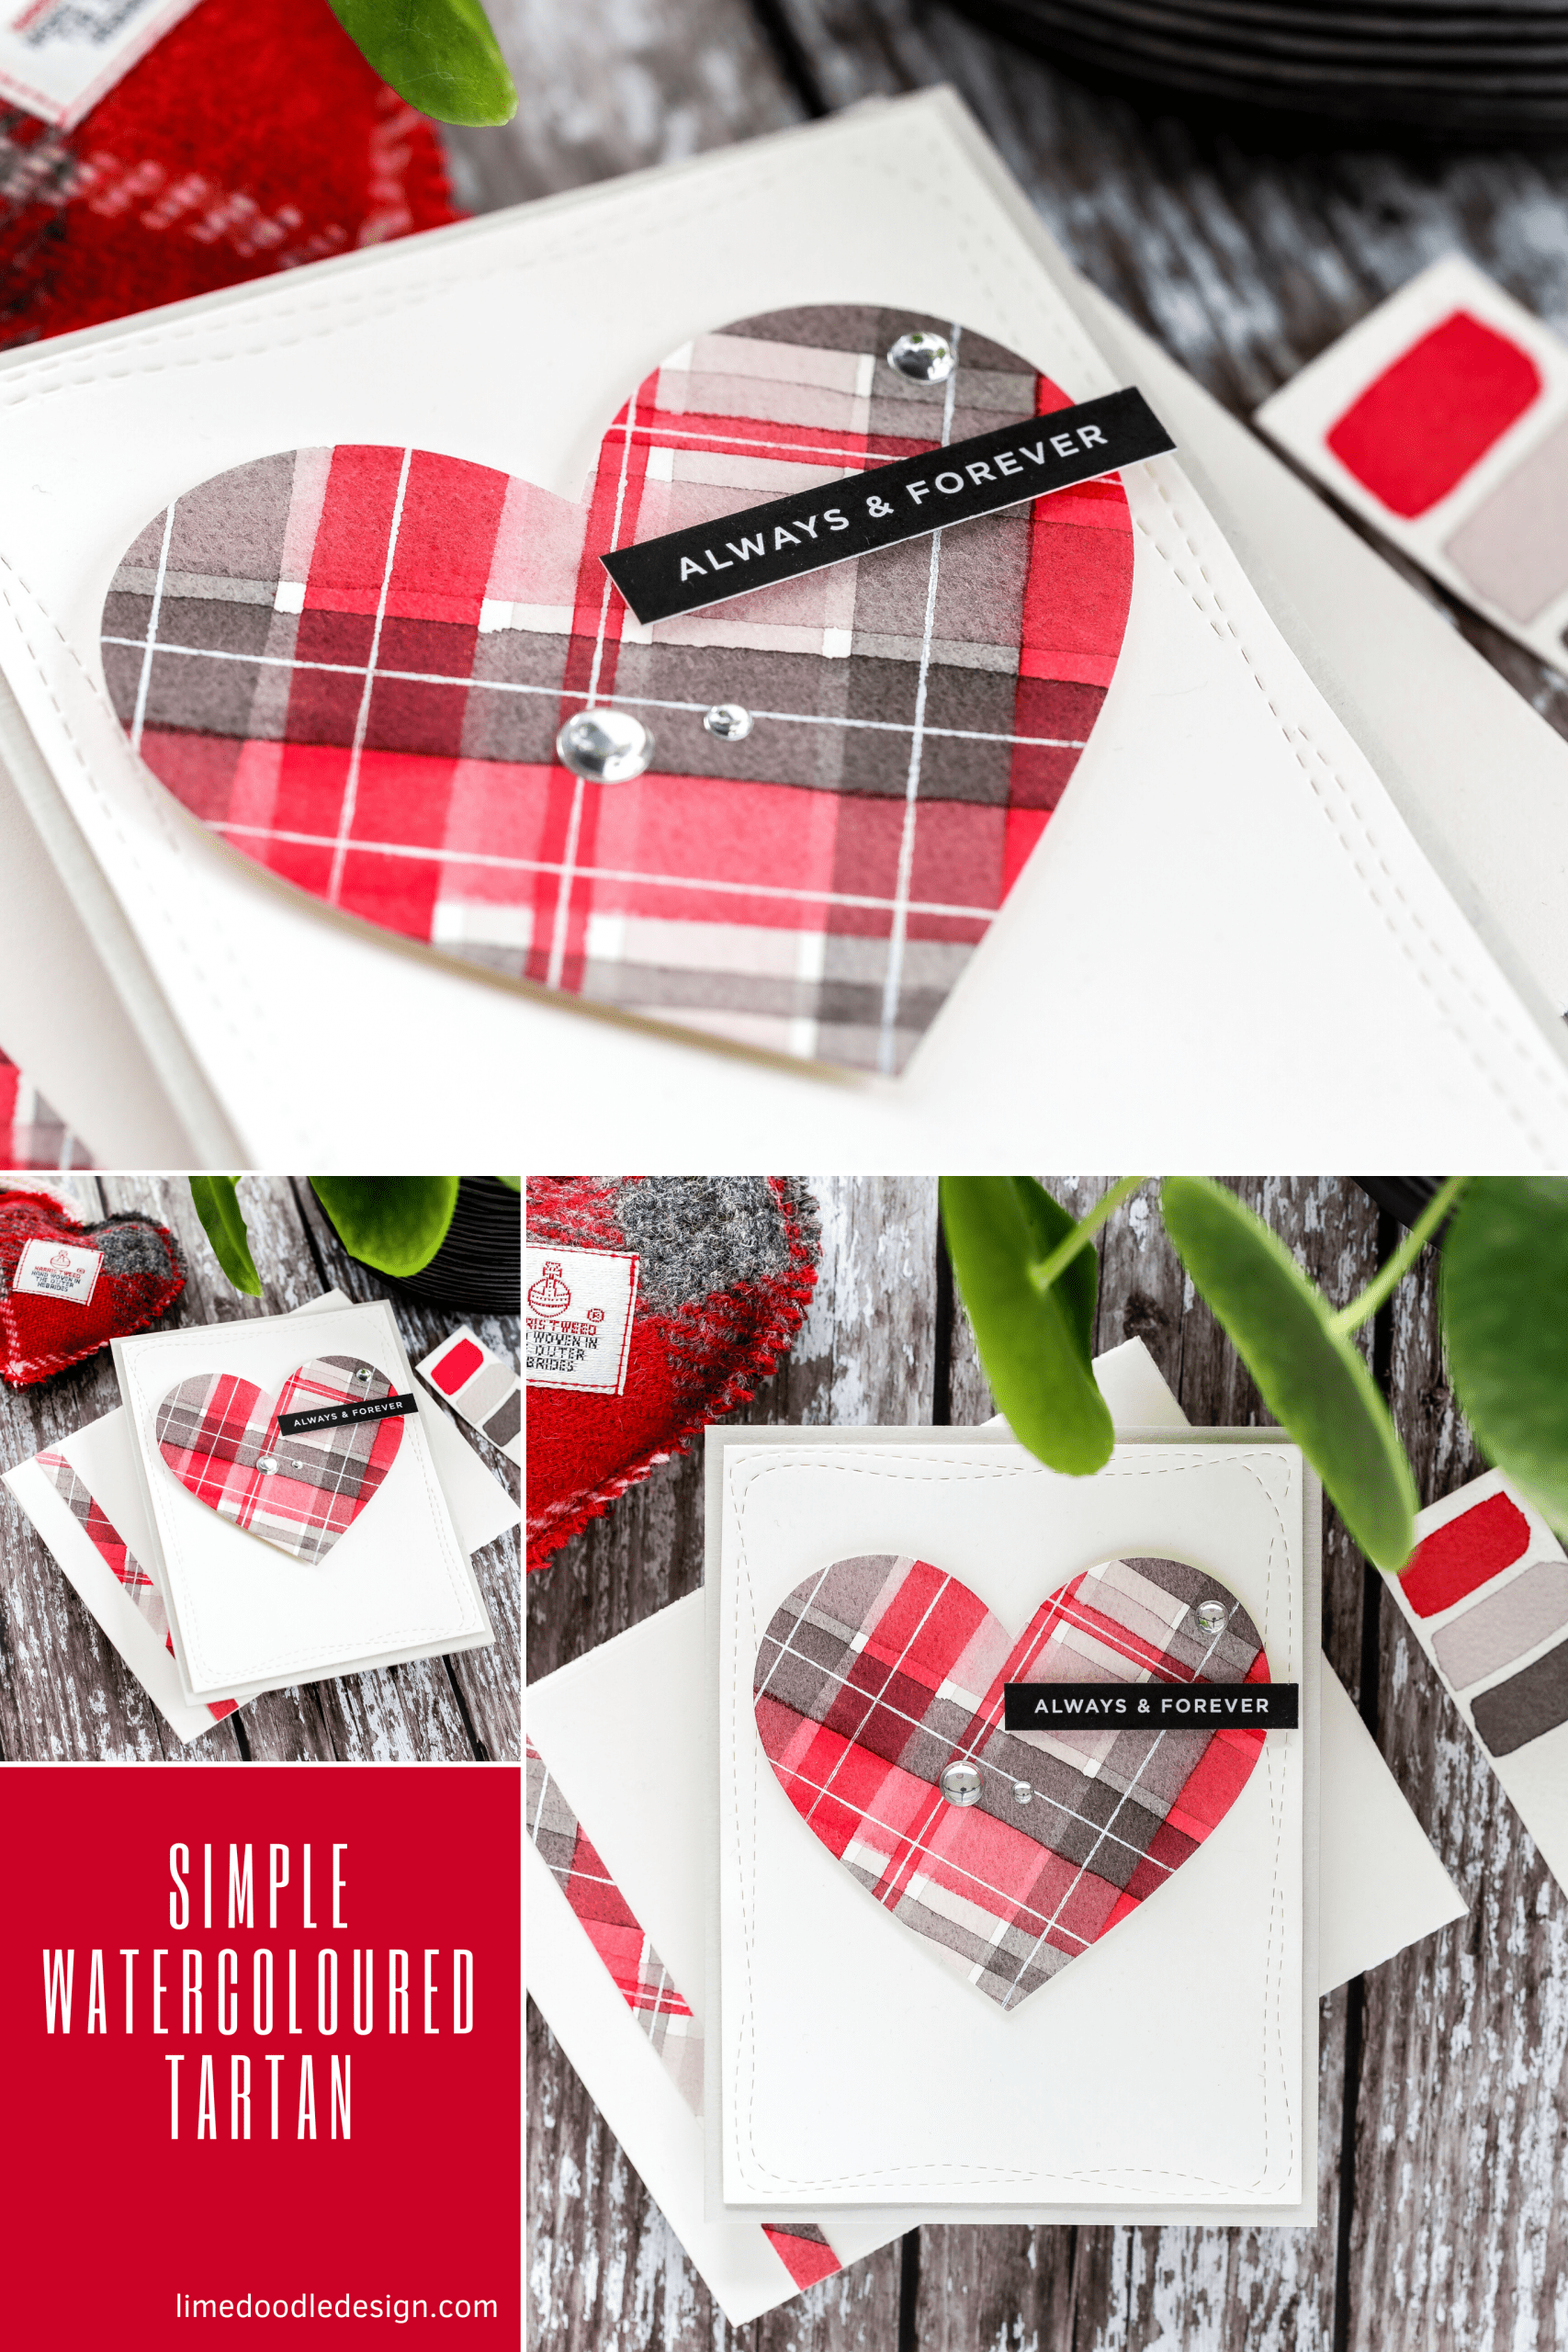 Simple watercolour tartan heart handmade card by Debby Hughes which would be great for Valentine's or an anniversary. Supplies from Simon Says Stamp. #tartan #watercolor #handmade